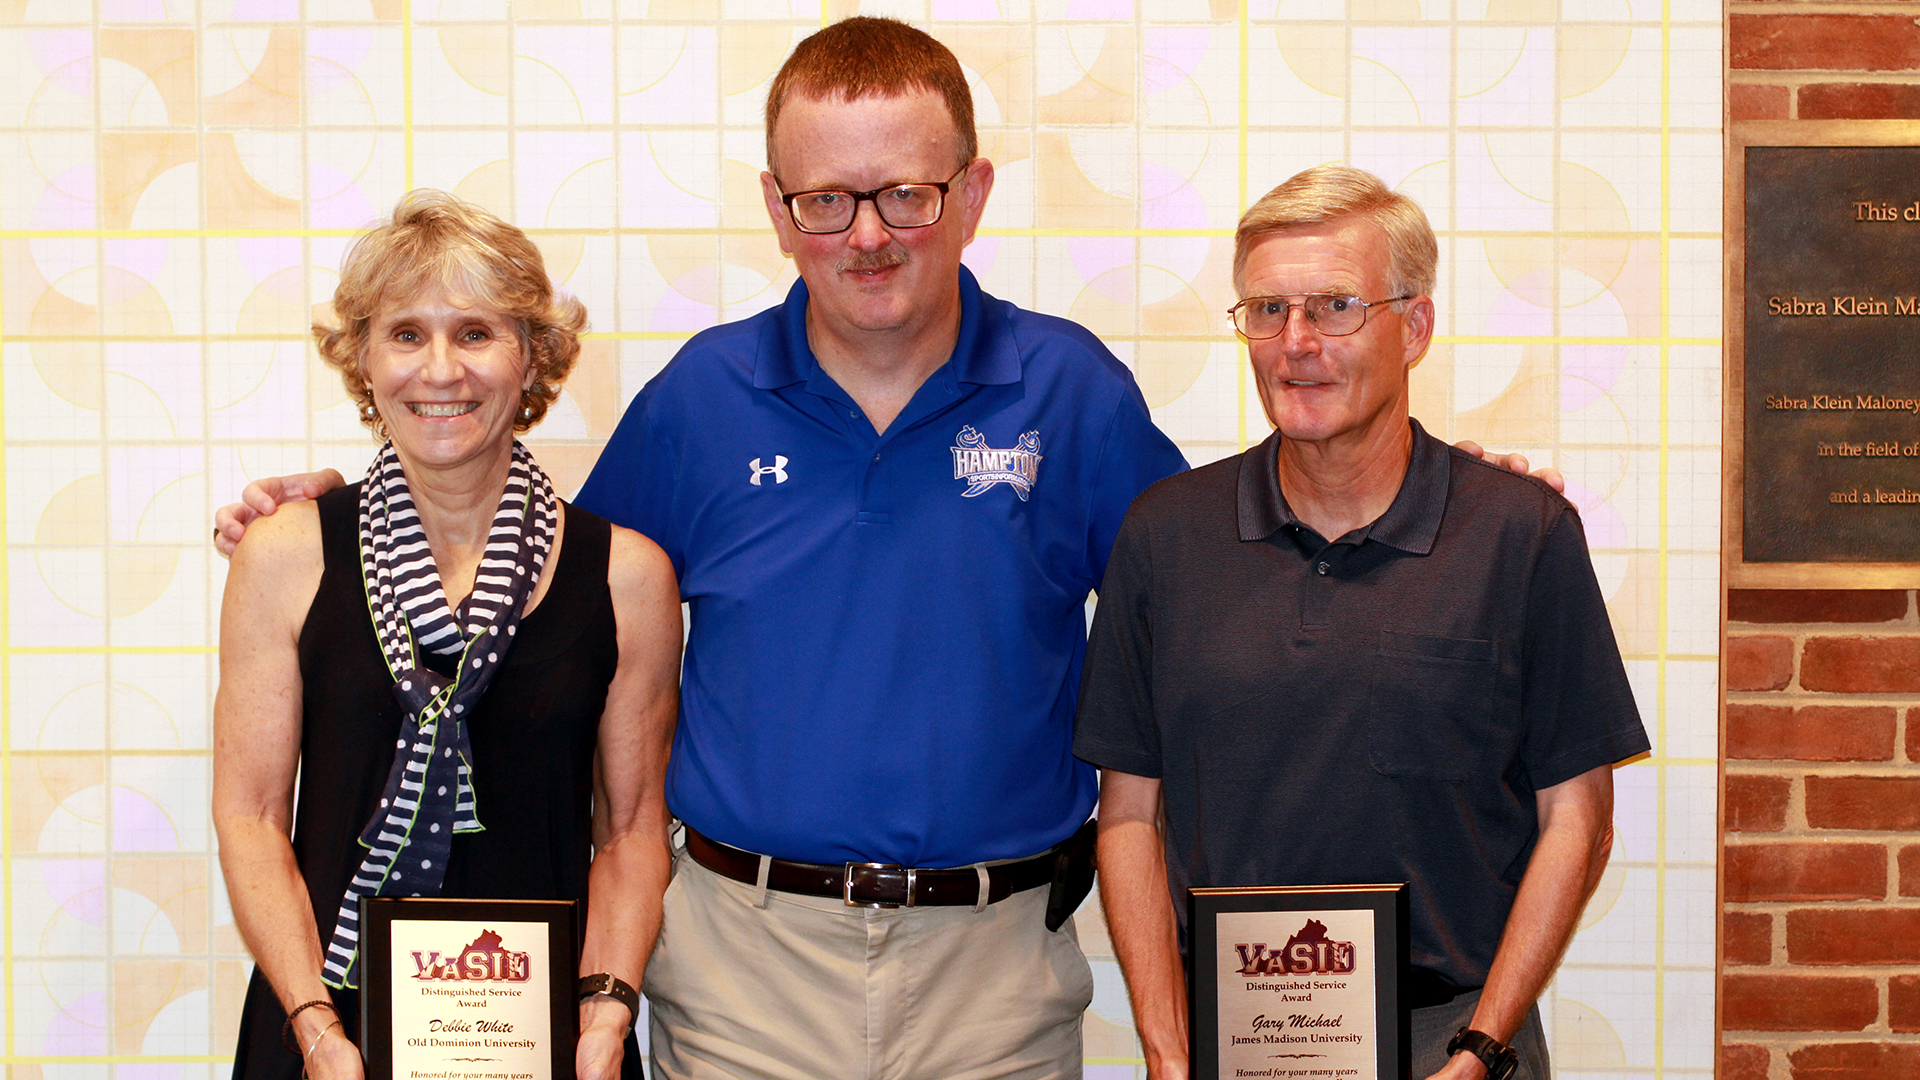 Administration: Former SID, Gary Michael, Receives VaSID Career Recognition